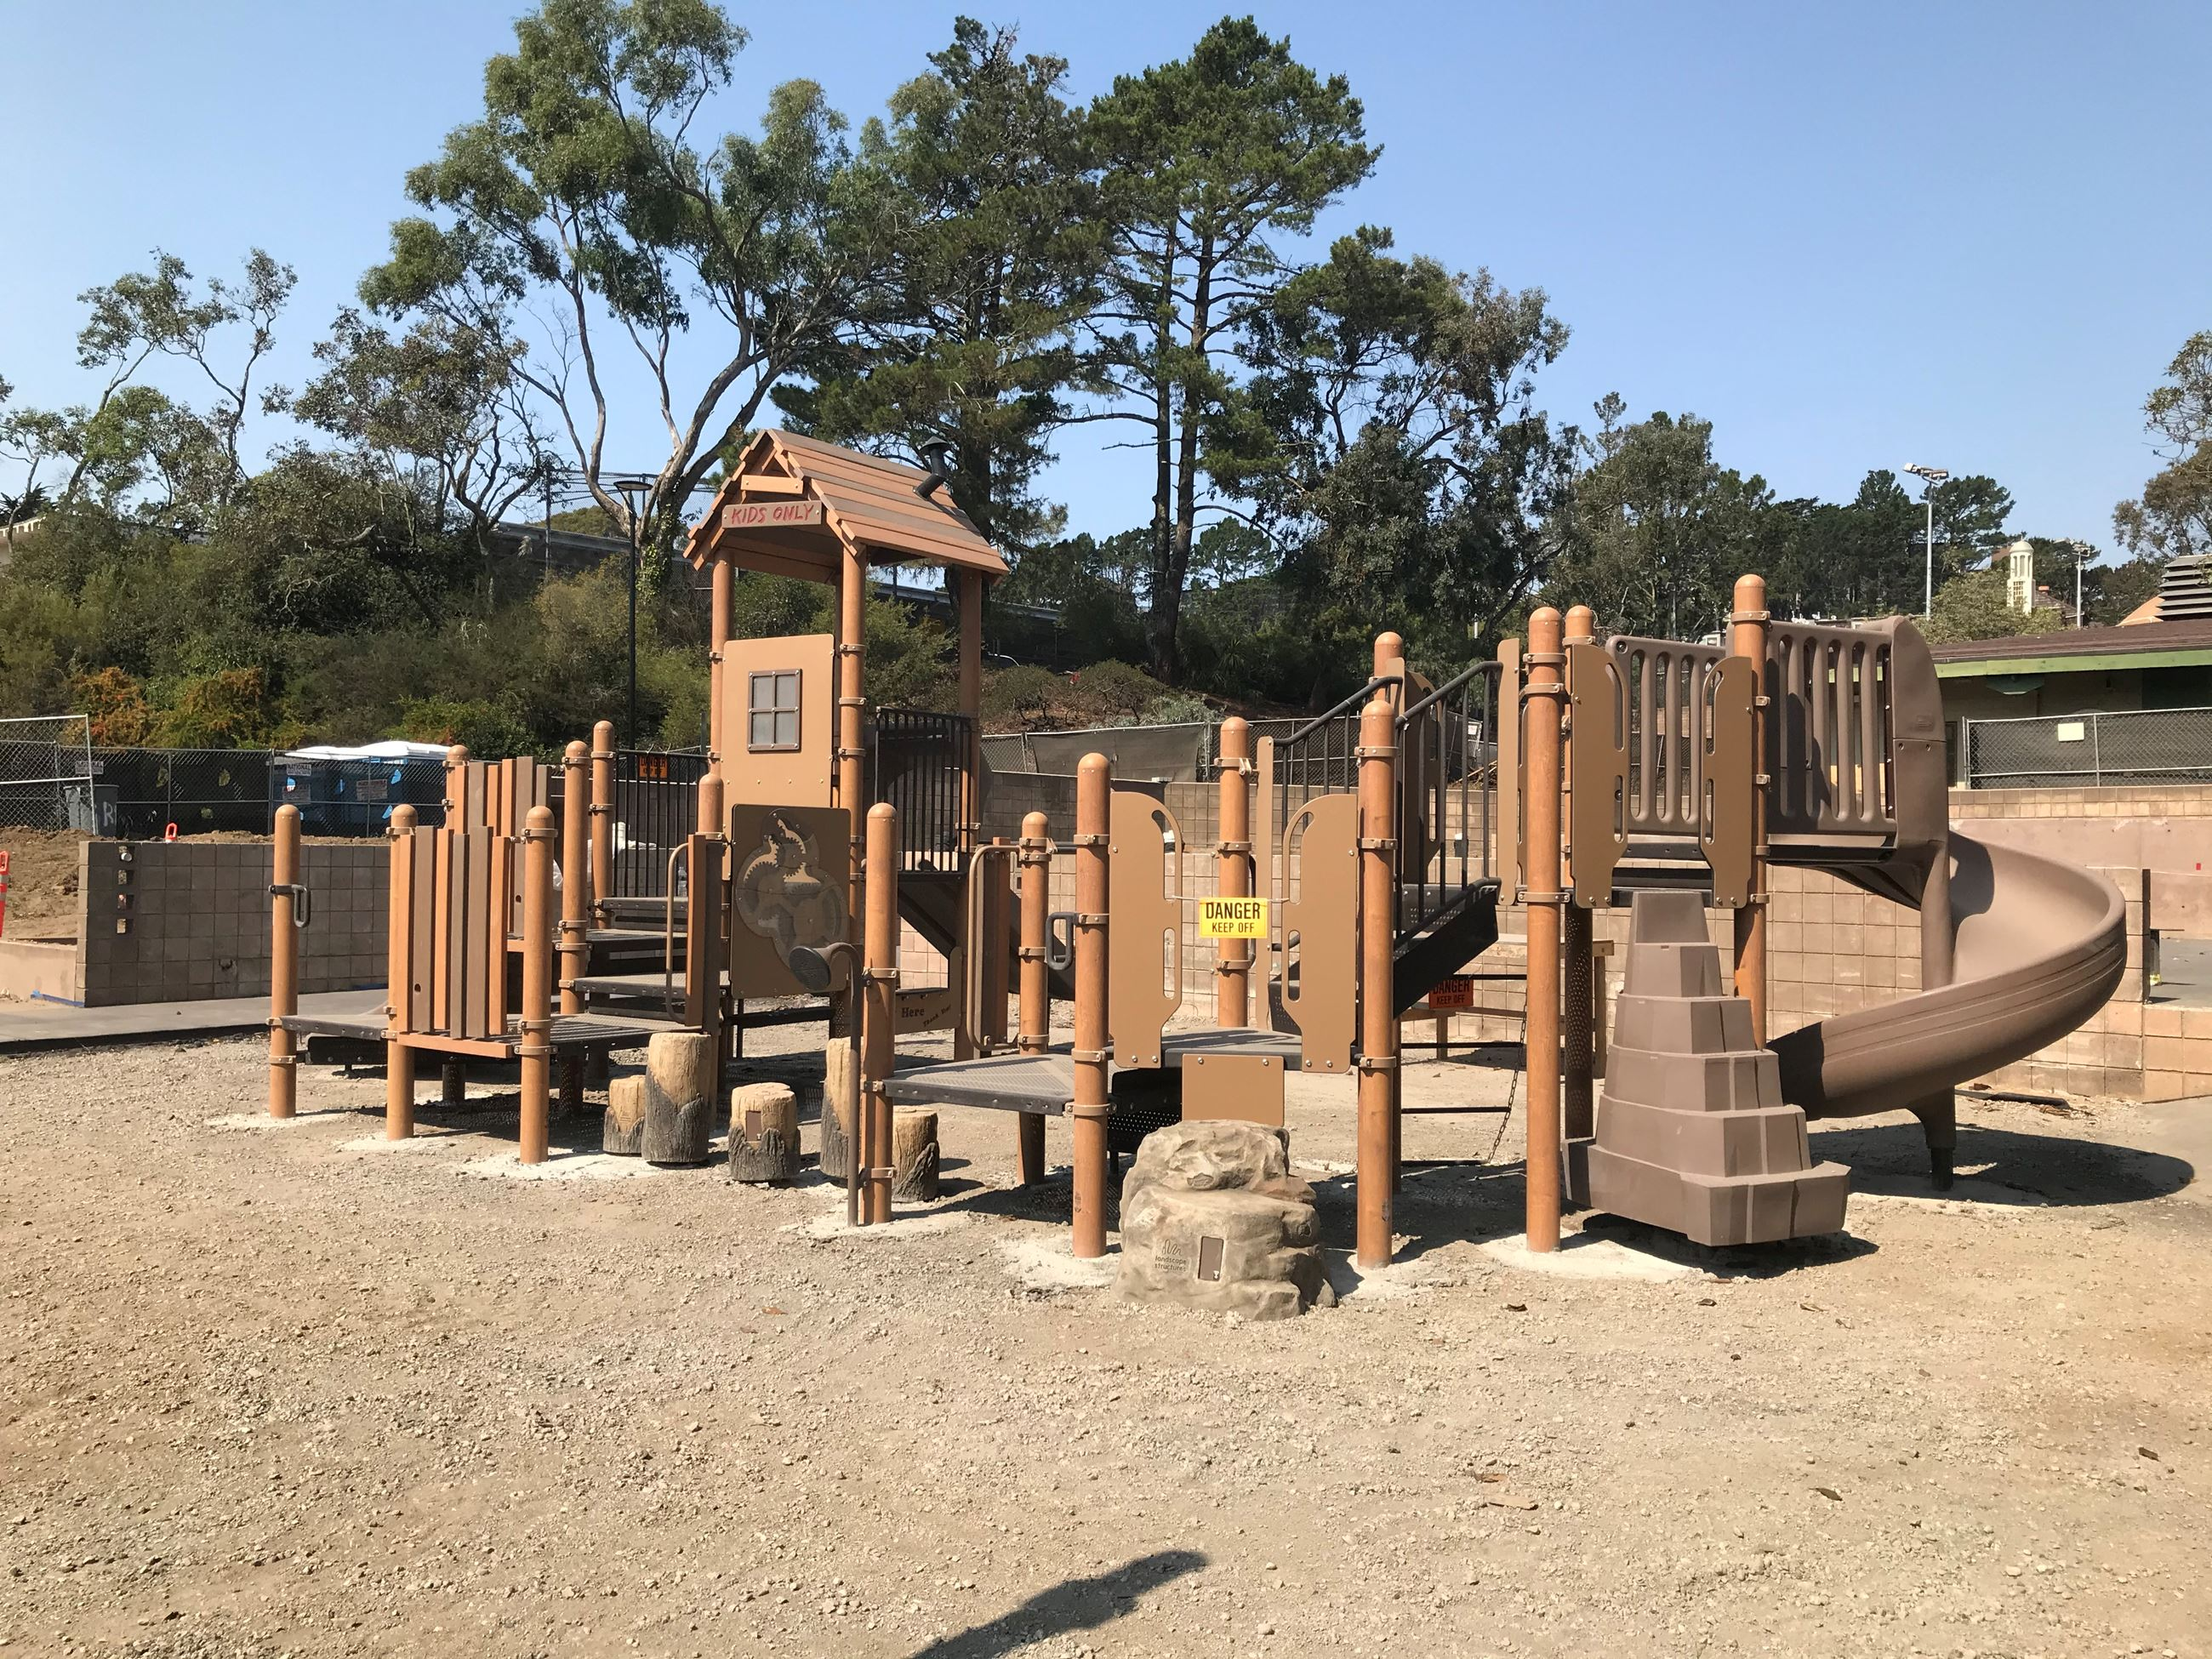 Play structure with brown climbing elements, rocks and boulders. Exposed soil.